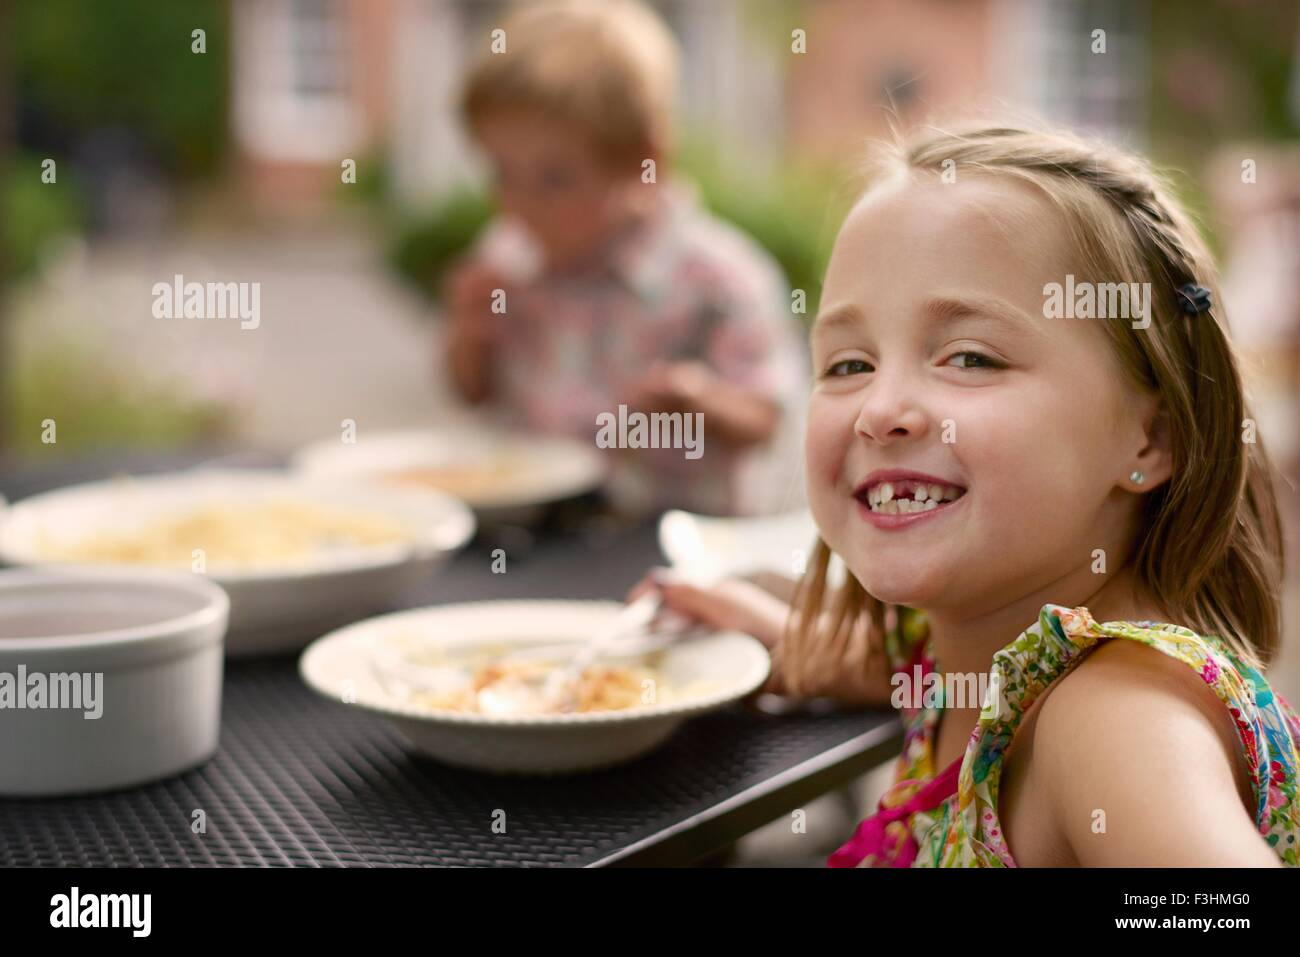 Girl restauration pour table de jardin, smiling at camera Photo Stock